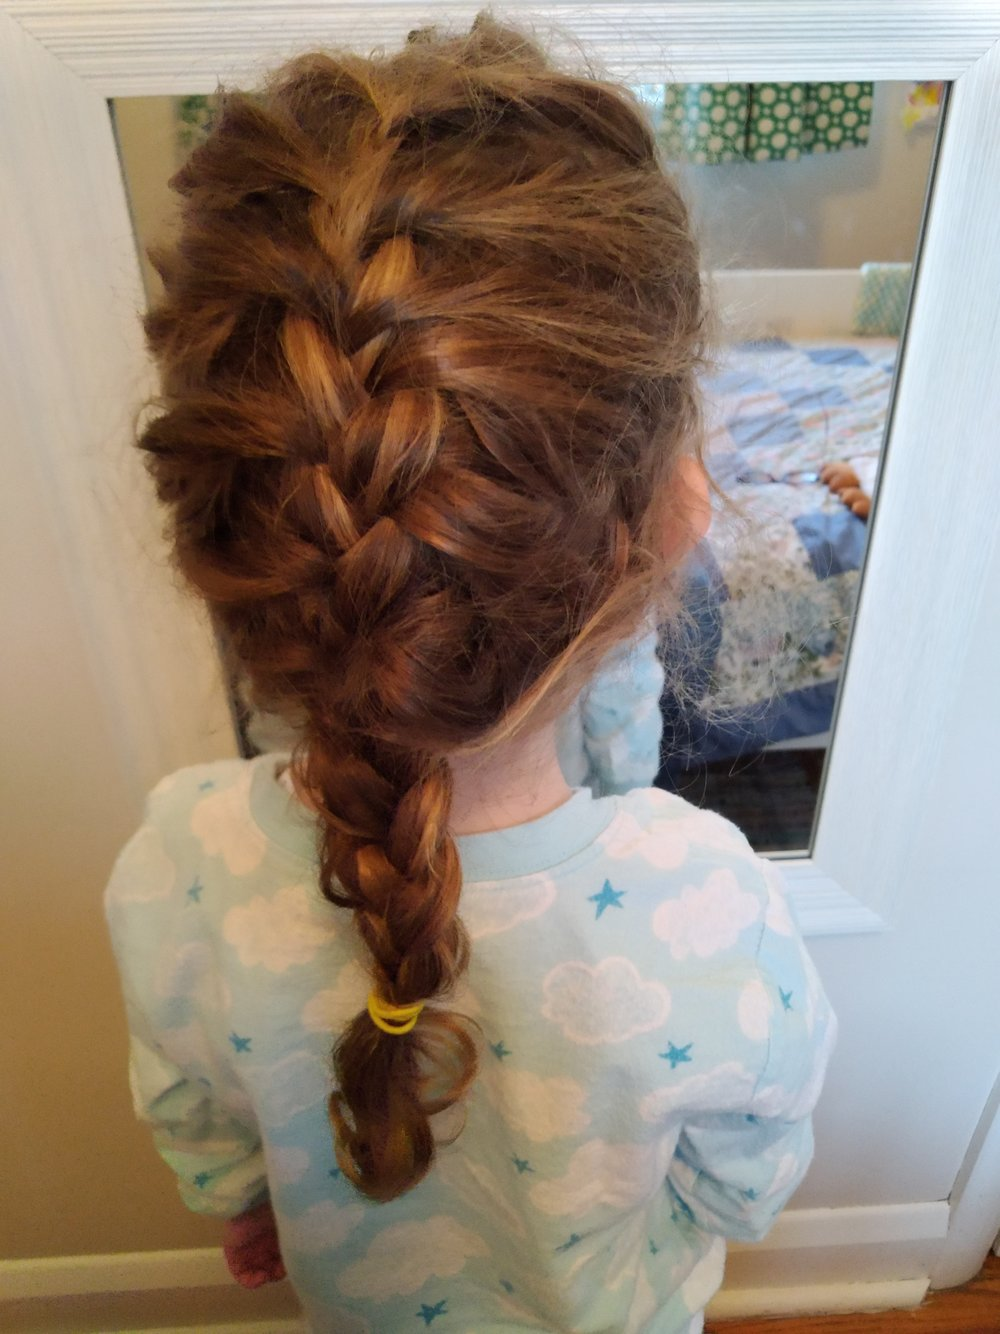 Bedtime braid and snuggly jammies